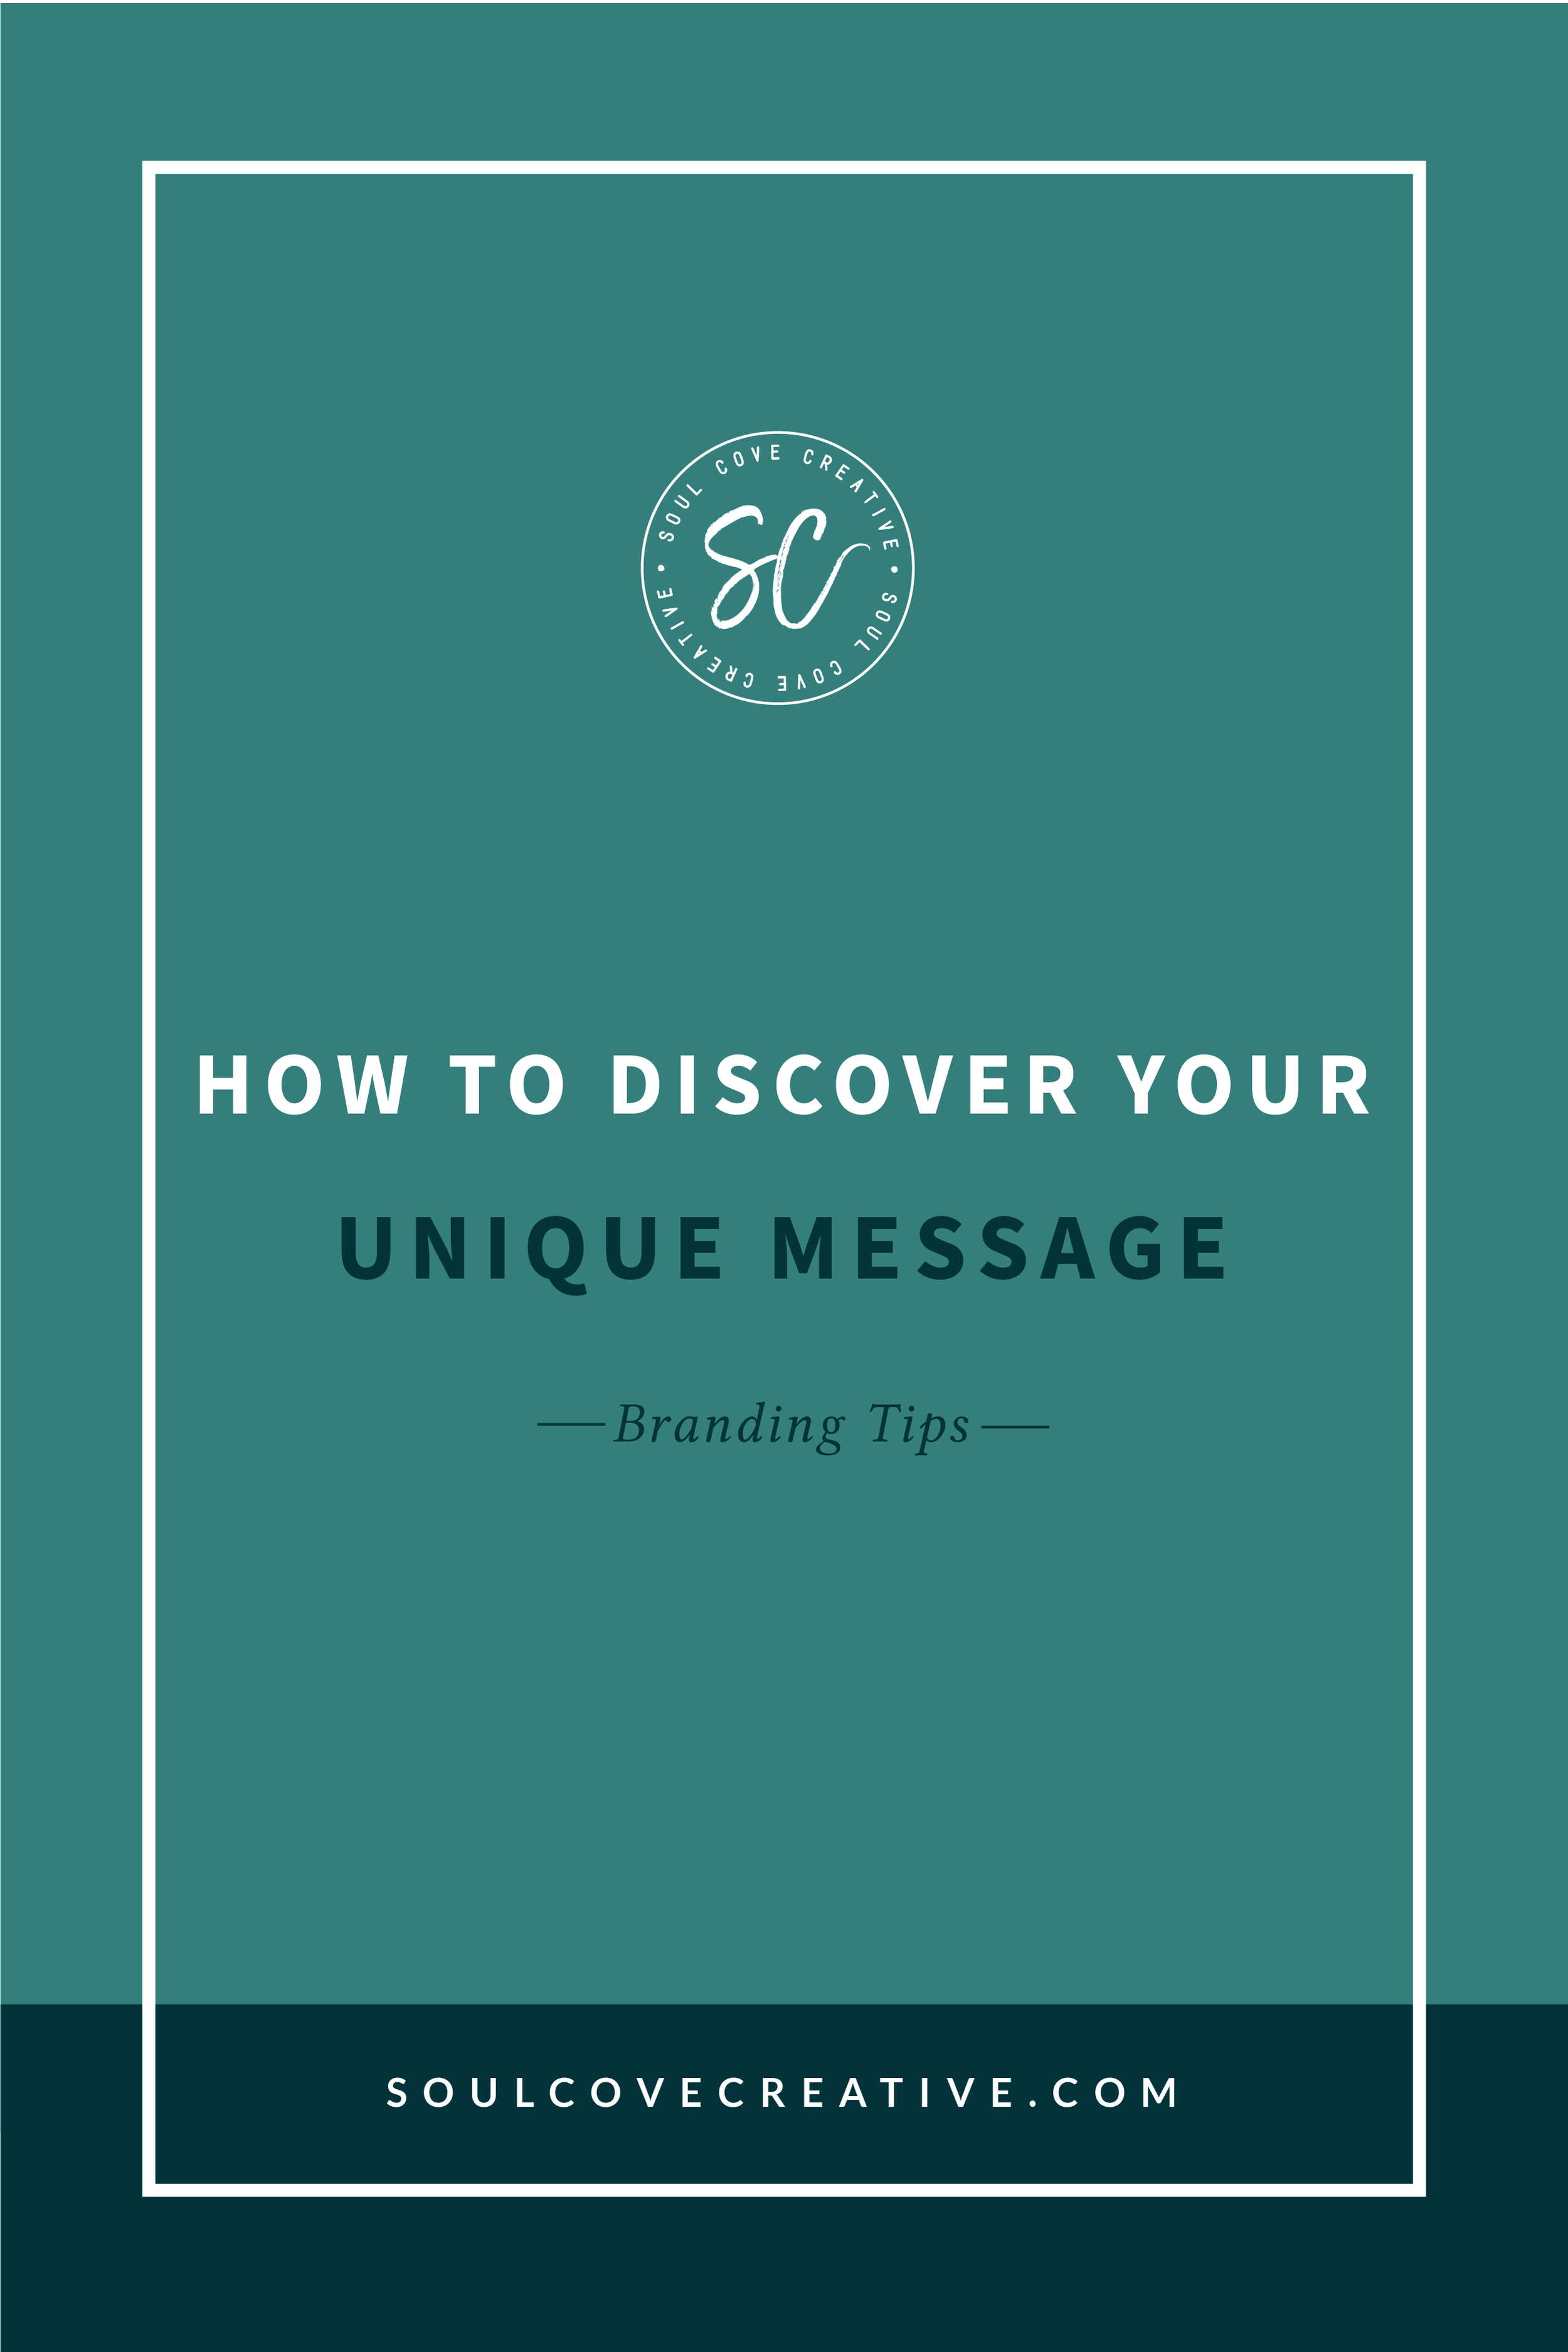 How to Discover Your Unique Brand Message